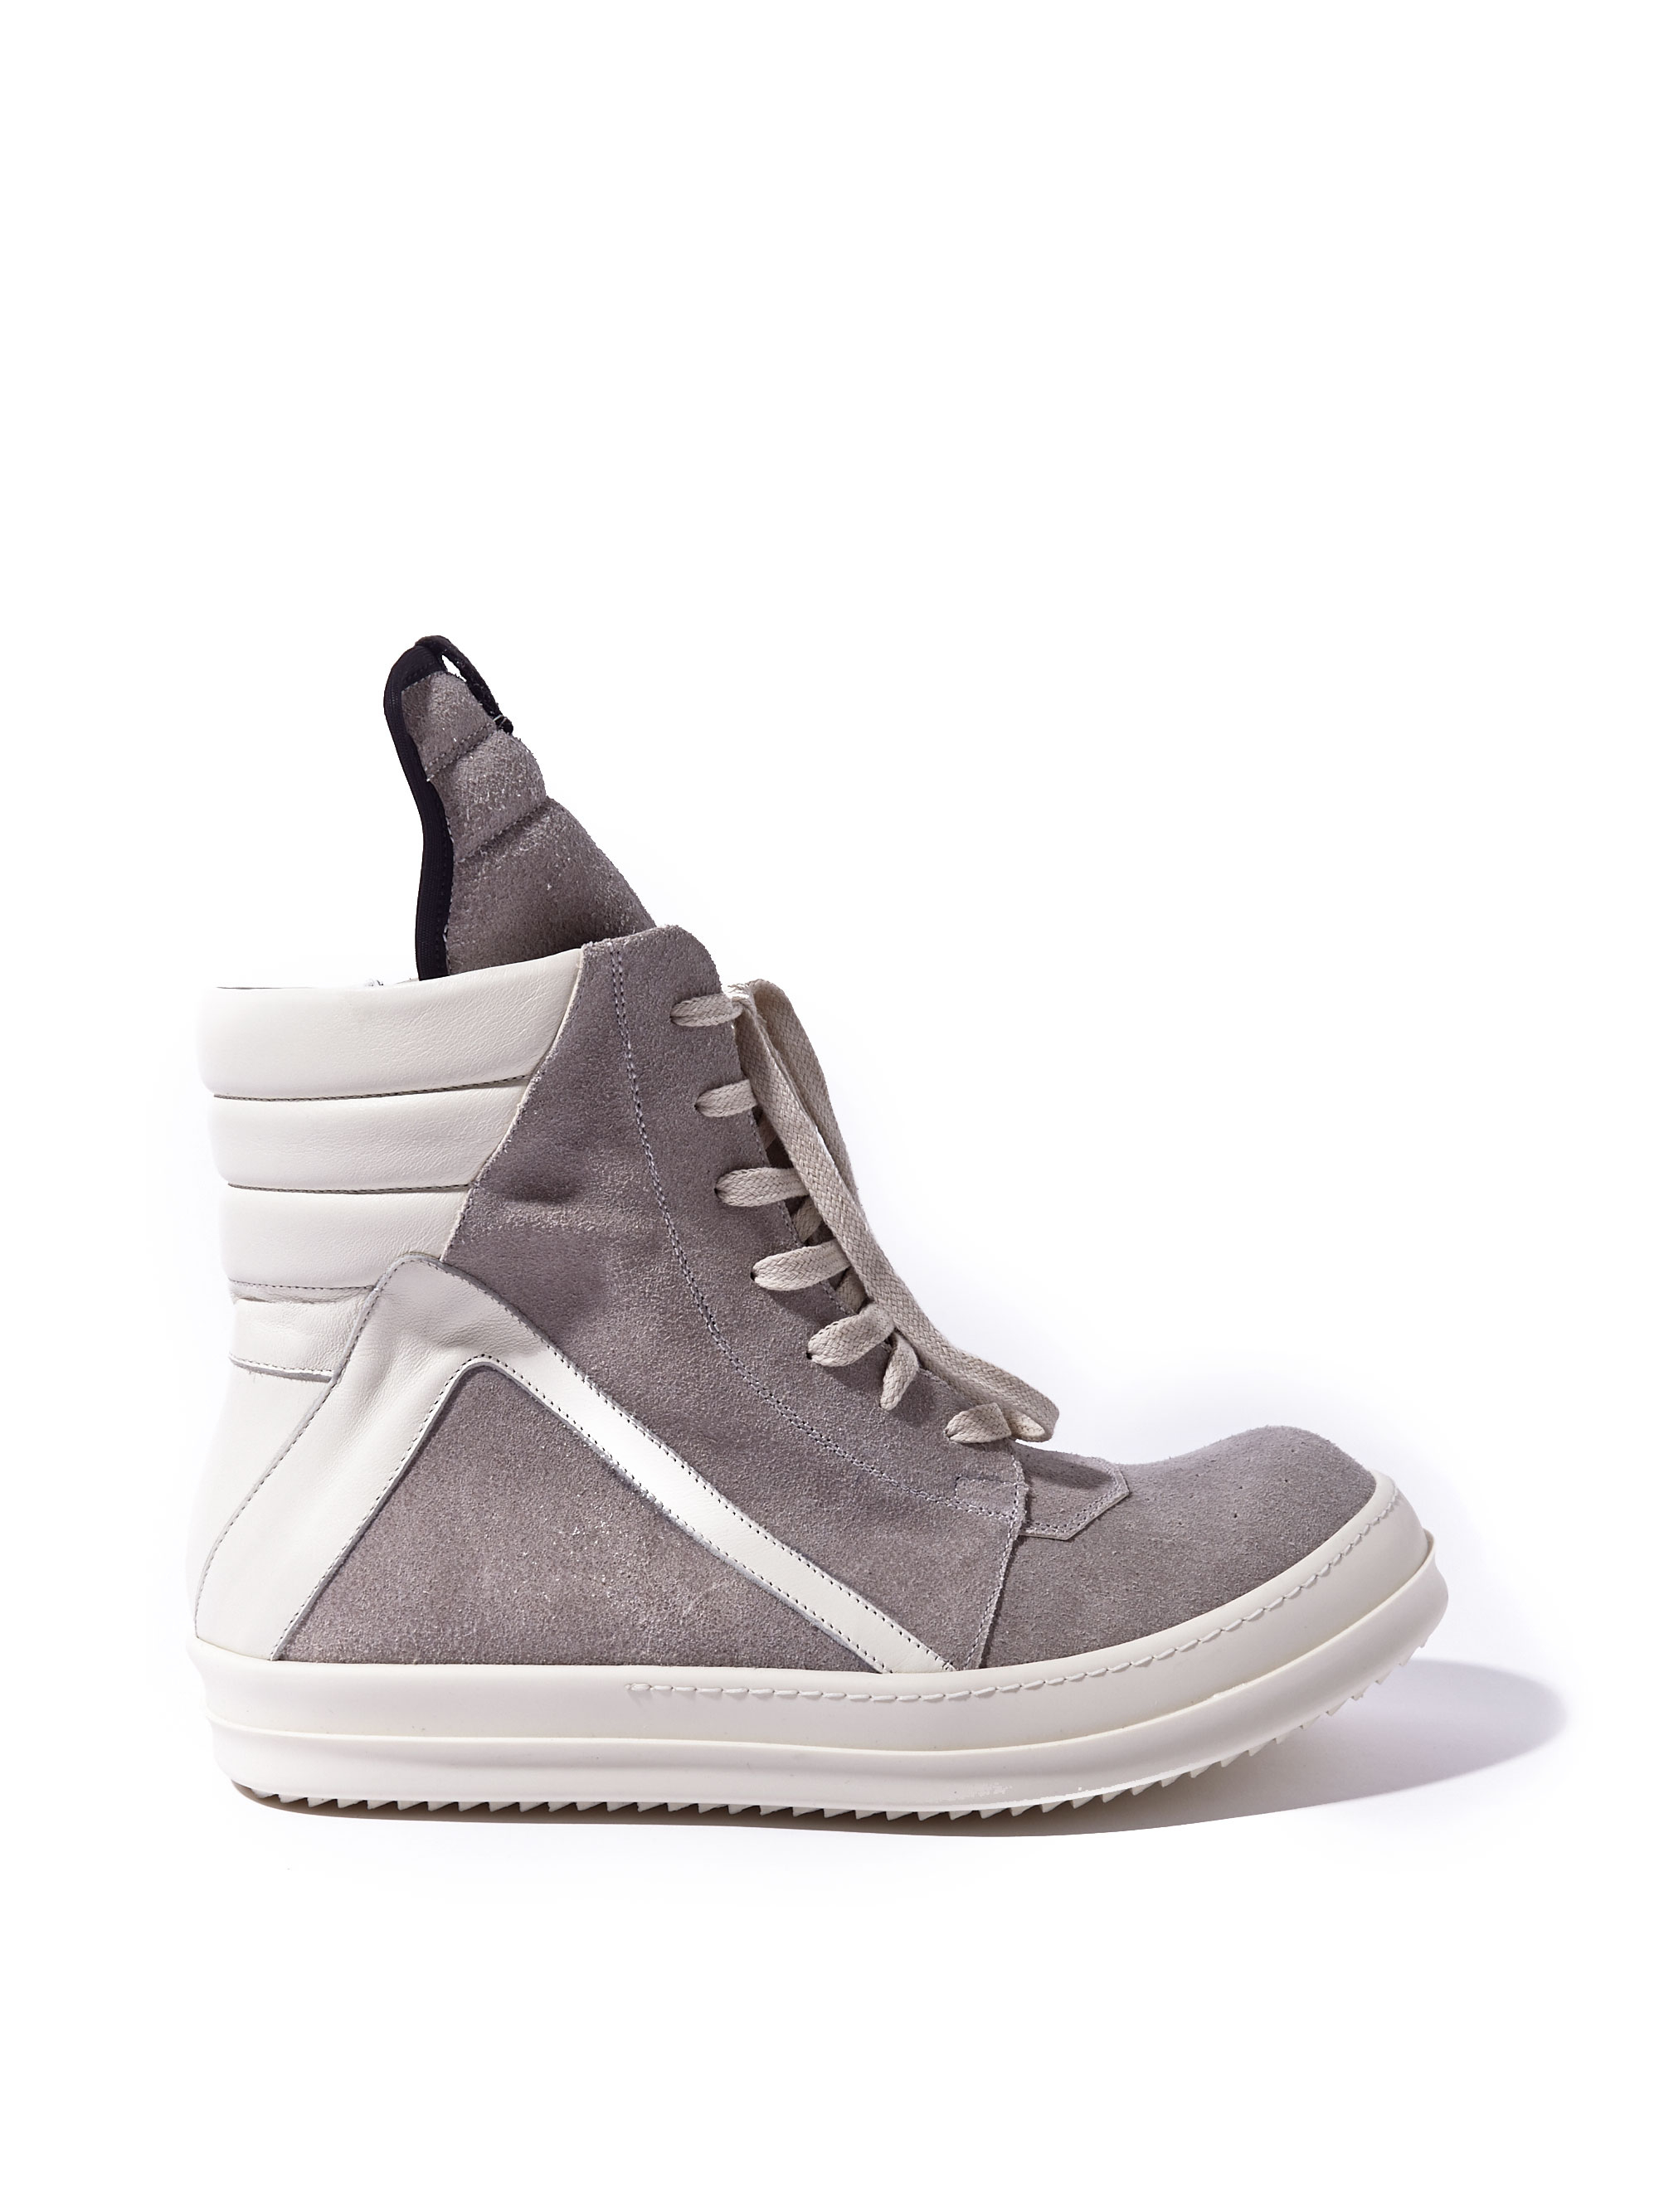 rick owens mens suede geobaskets in gray for grey lyst